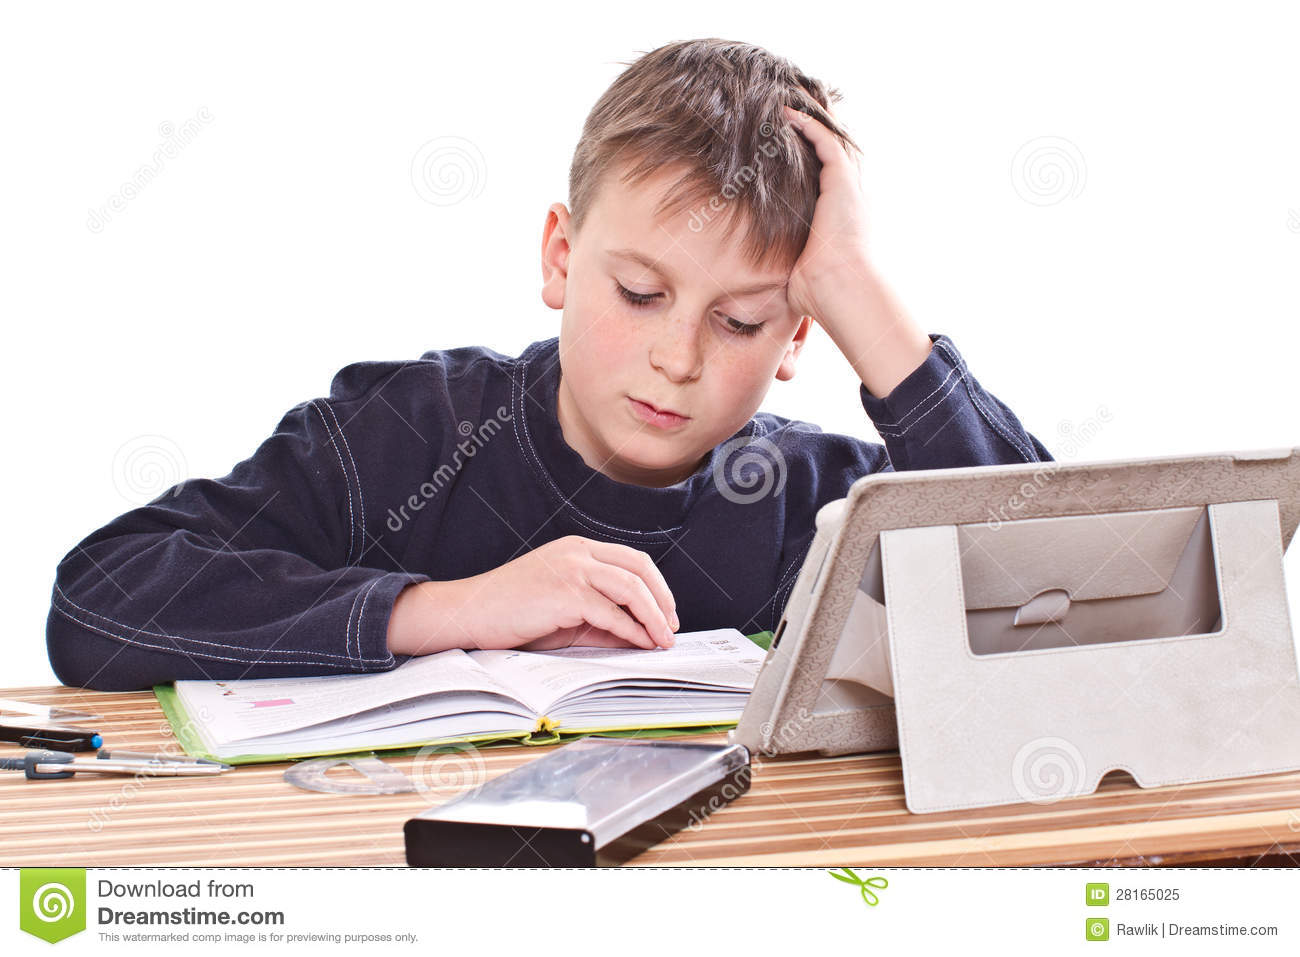 Homework and the asd student